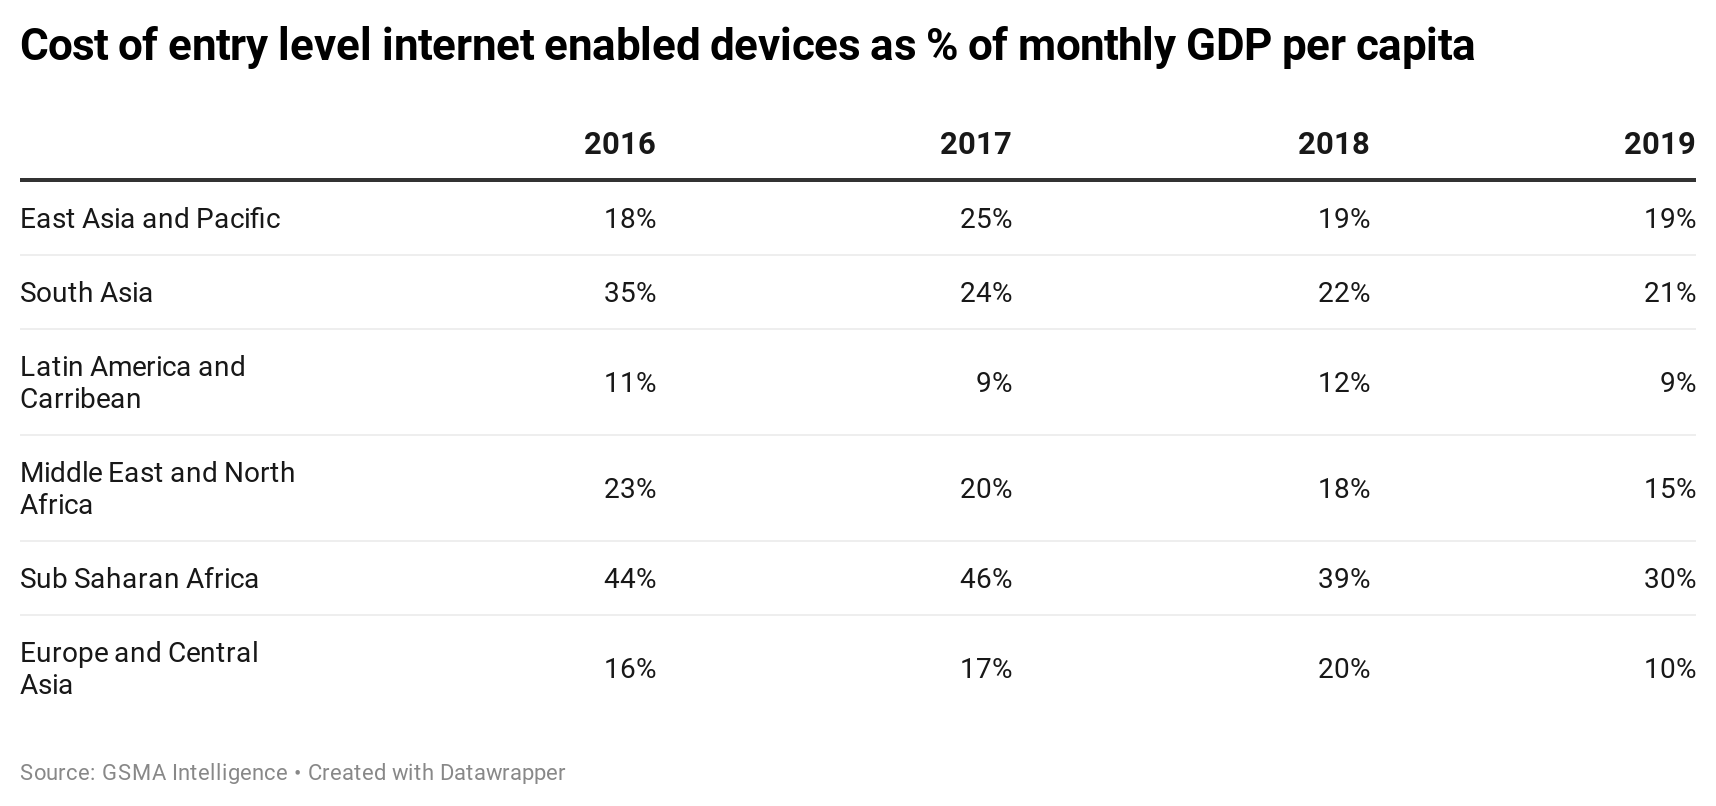 Cost of entry level internet enabled devices as % of monthly GDP per capita